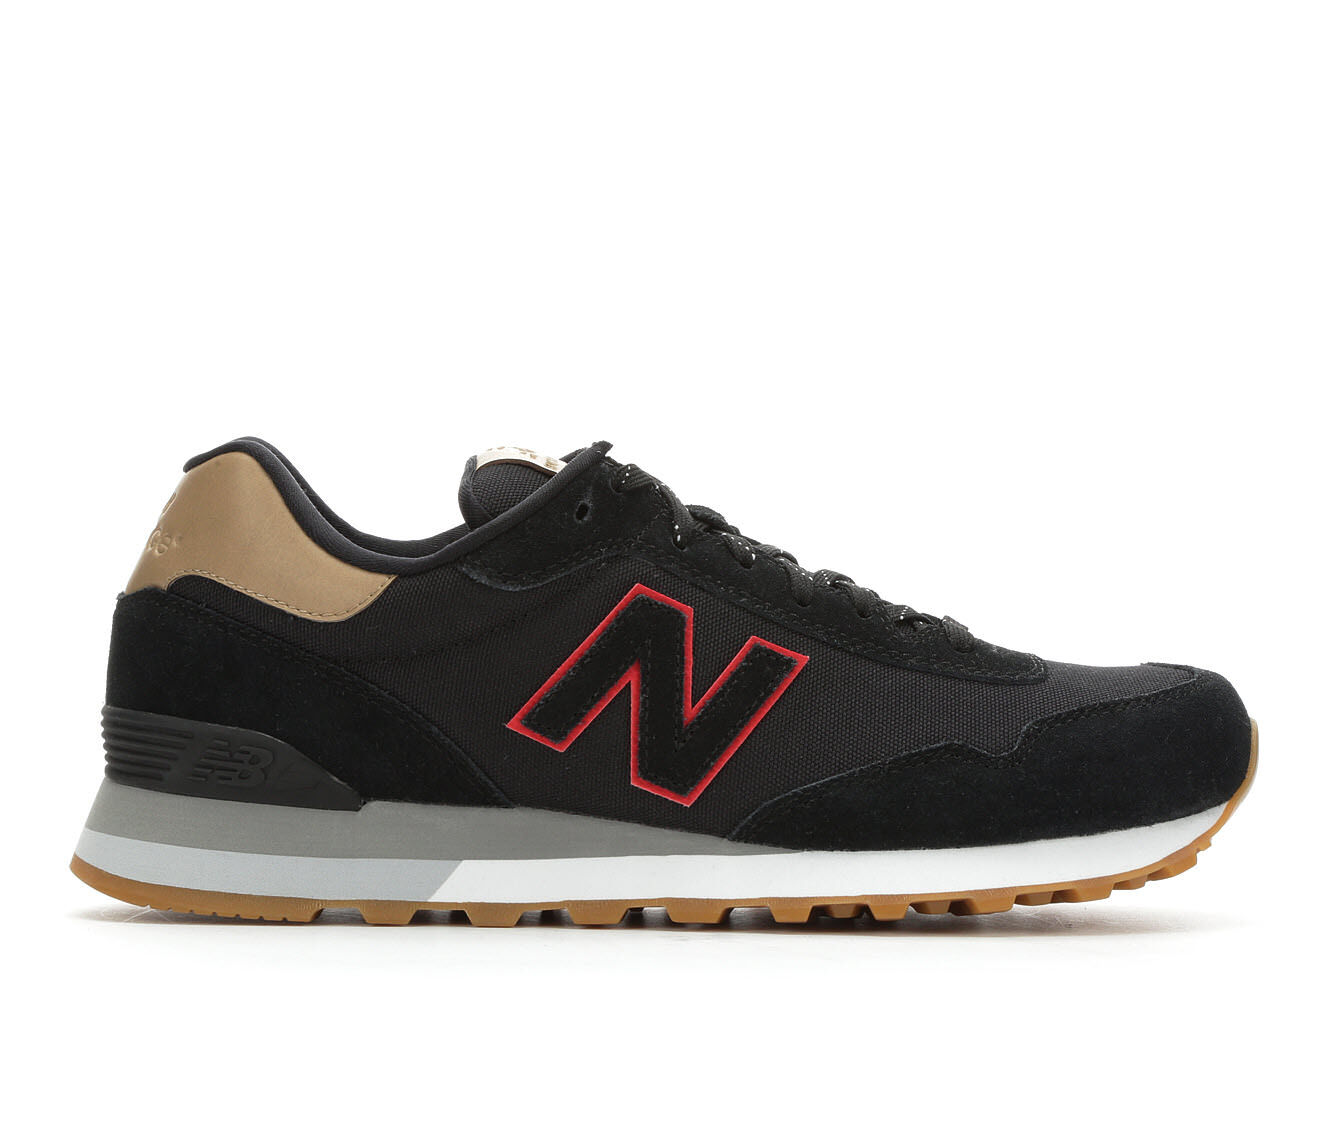 quick shipping Men's New Balance ML515 Retro Sneakers Blk/Brn/Red/Gum